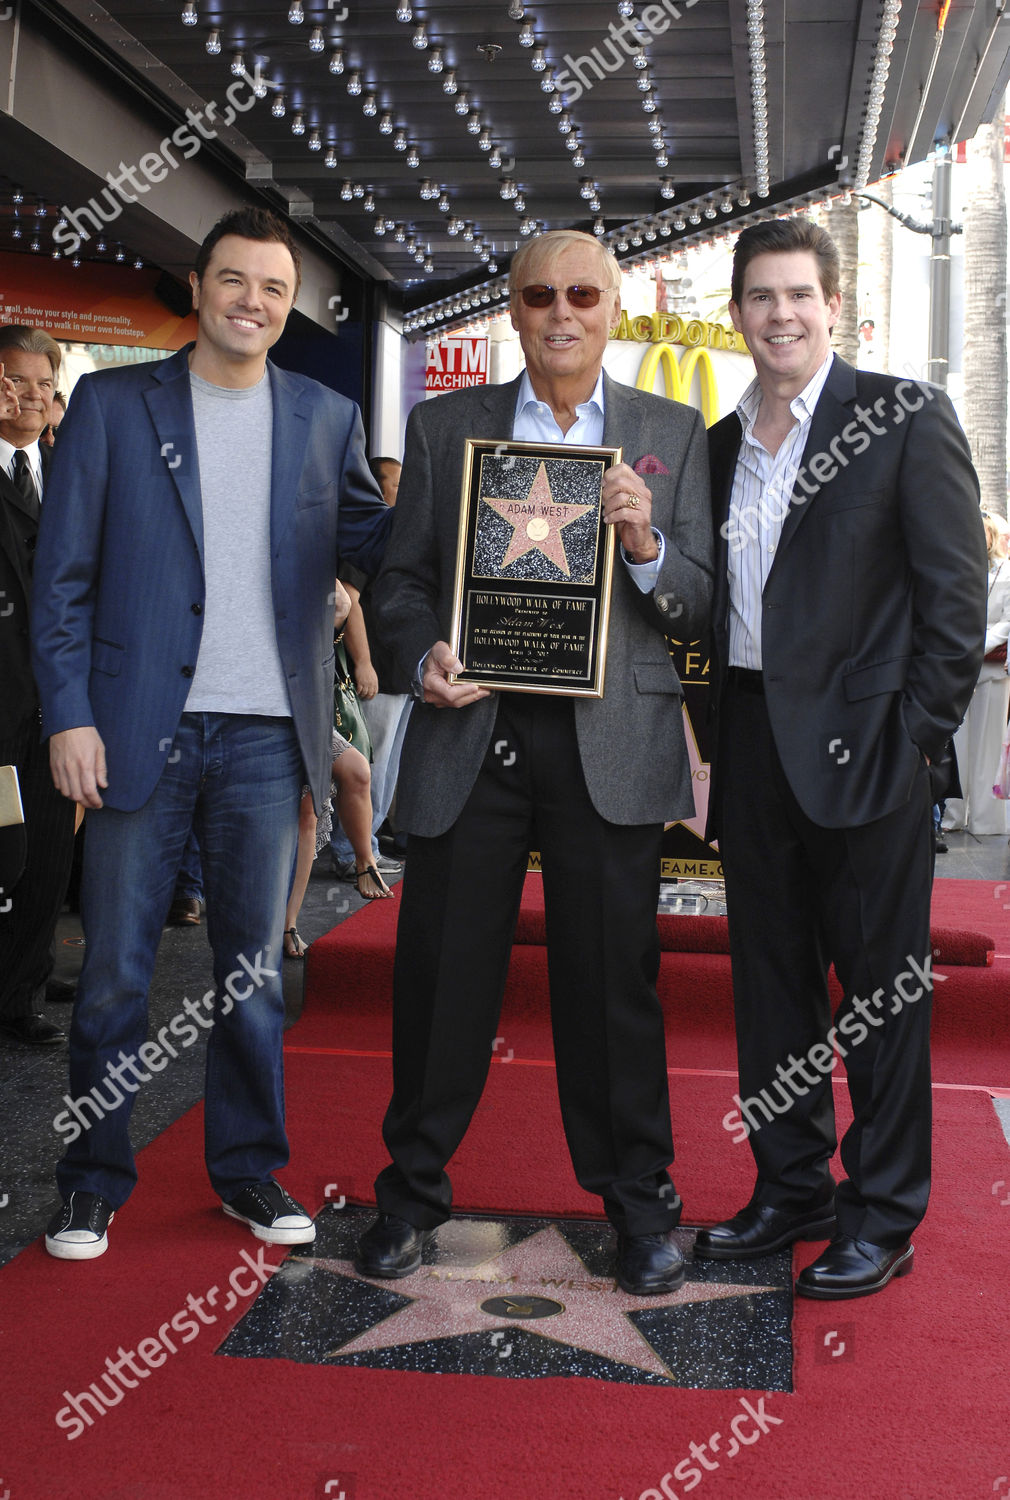 Stock photo of Adam West honored with a star on the Hollywood Walk of Fame, Los Angeles, America - 05 Apr 2012